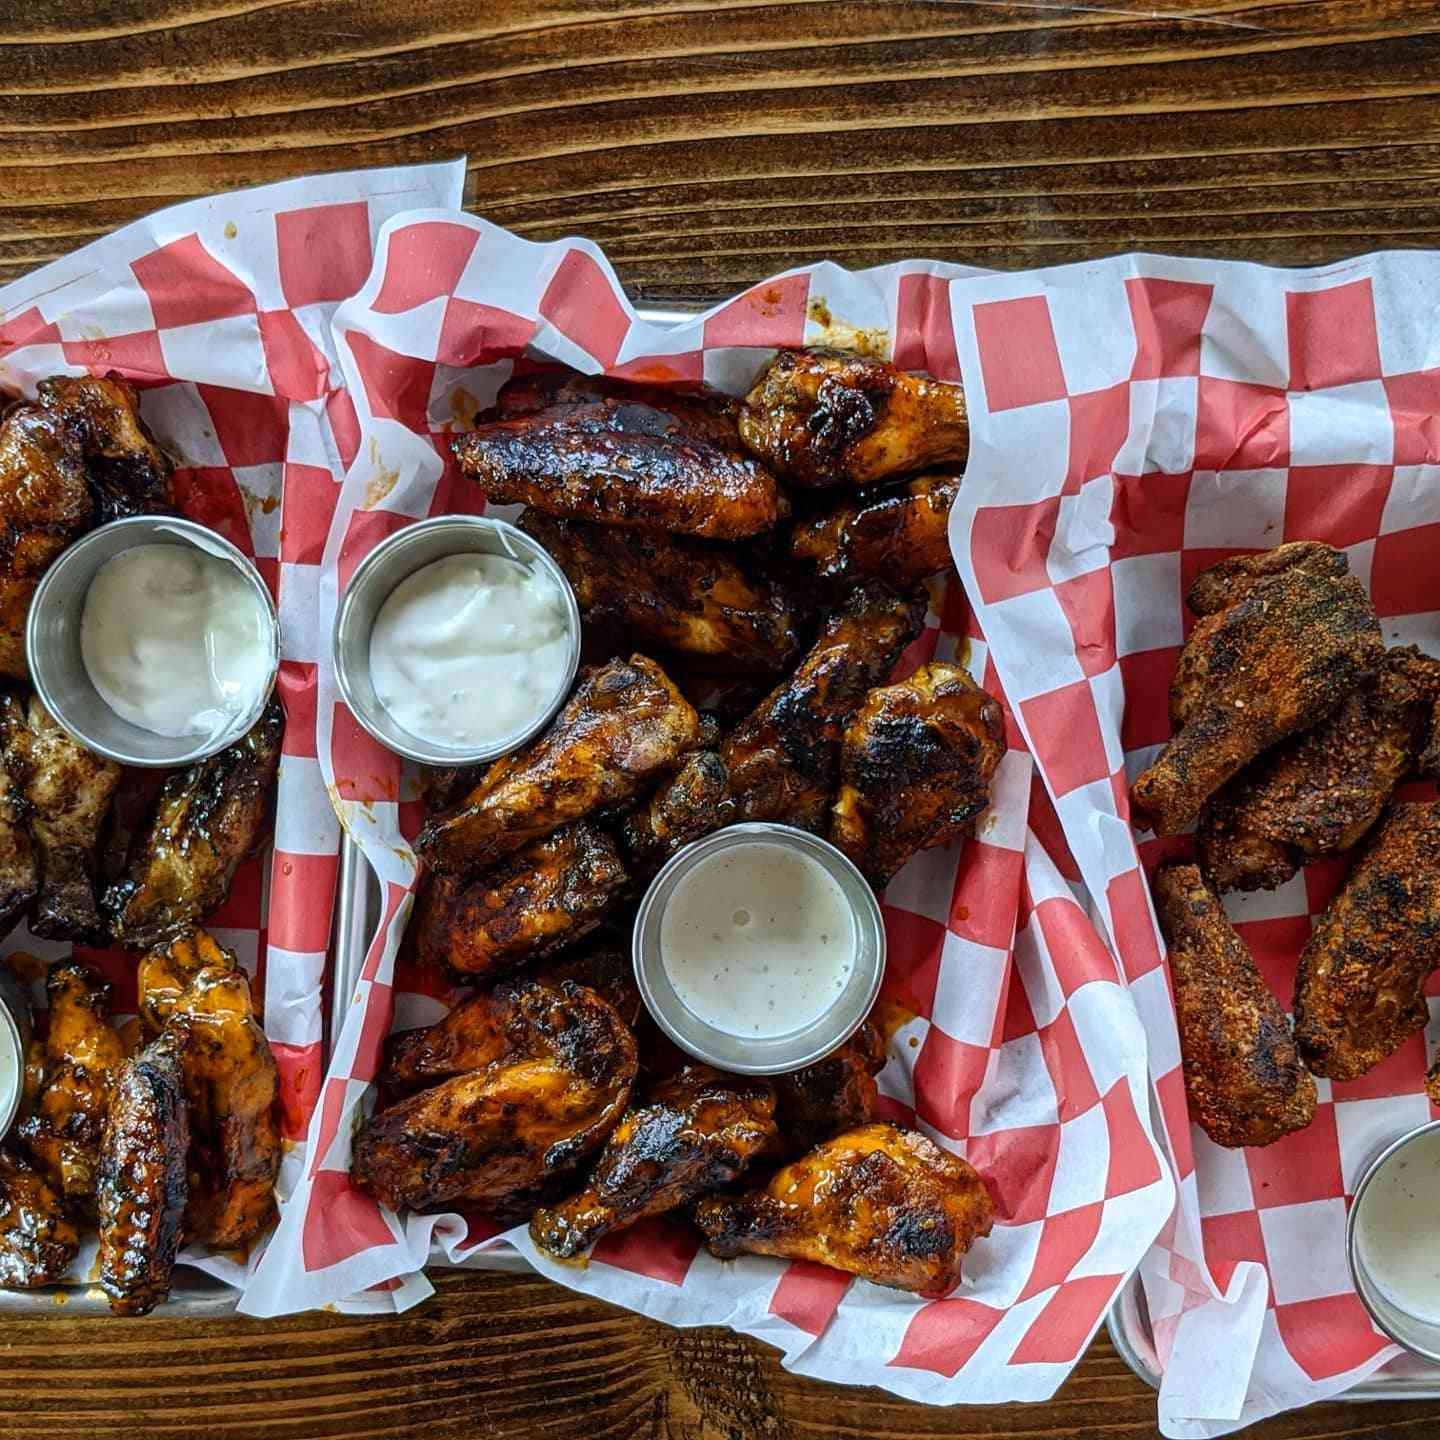 Three baskets of chicken wings